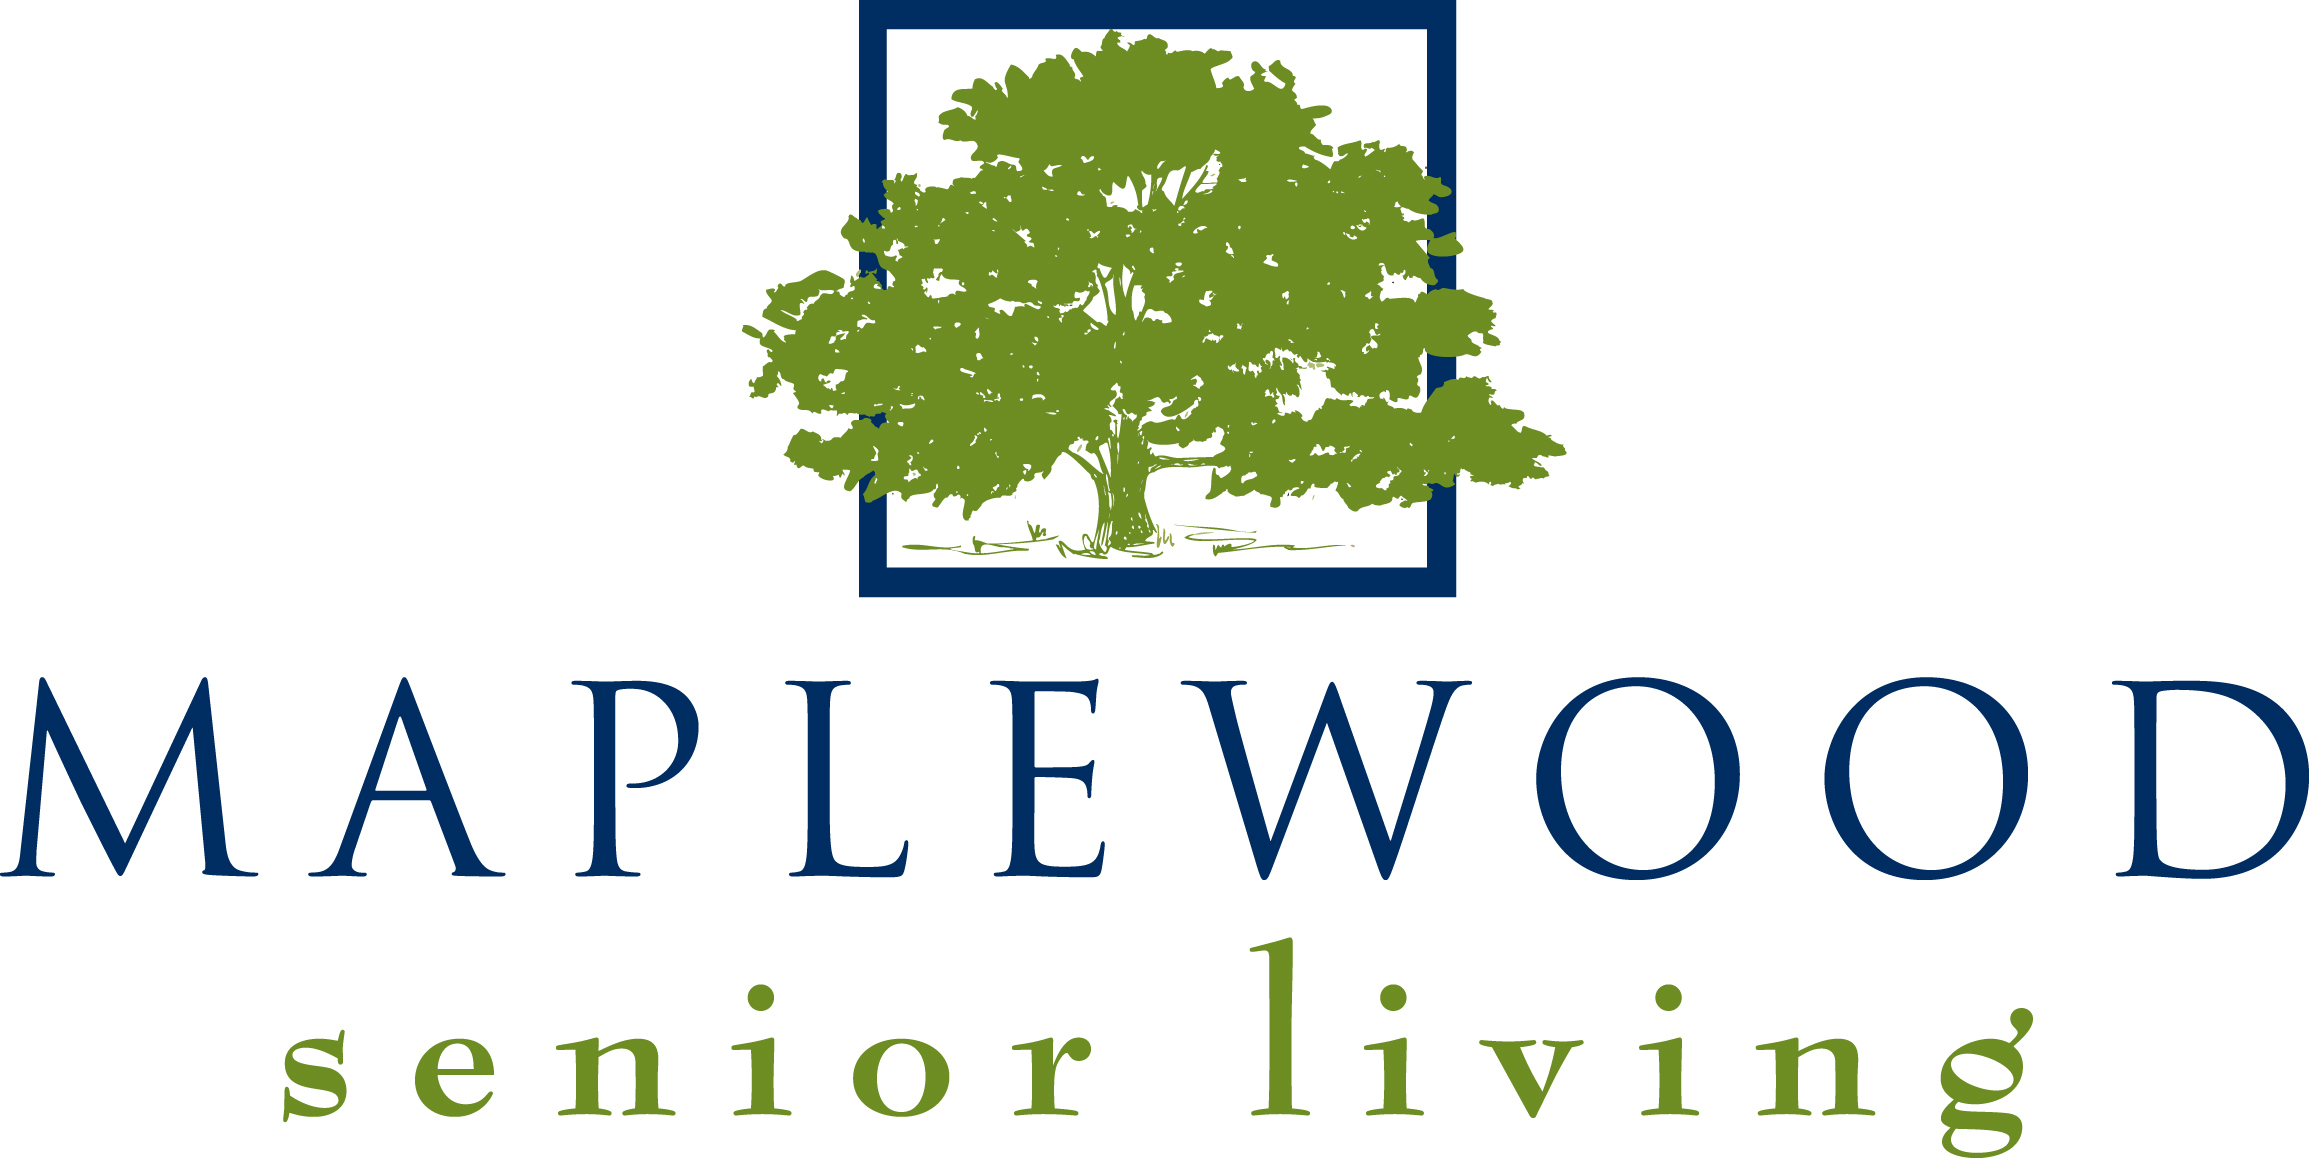 11. Maplewood Senior Living (Statewide Benefactor)